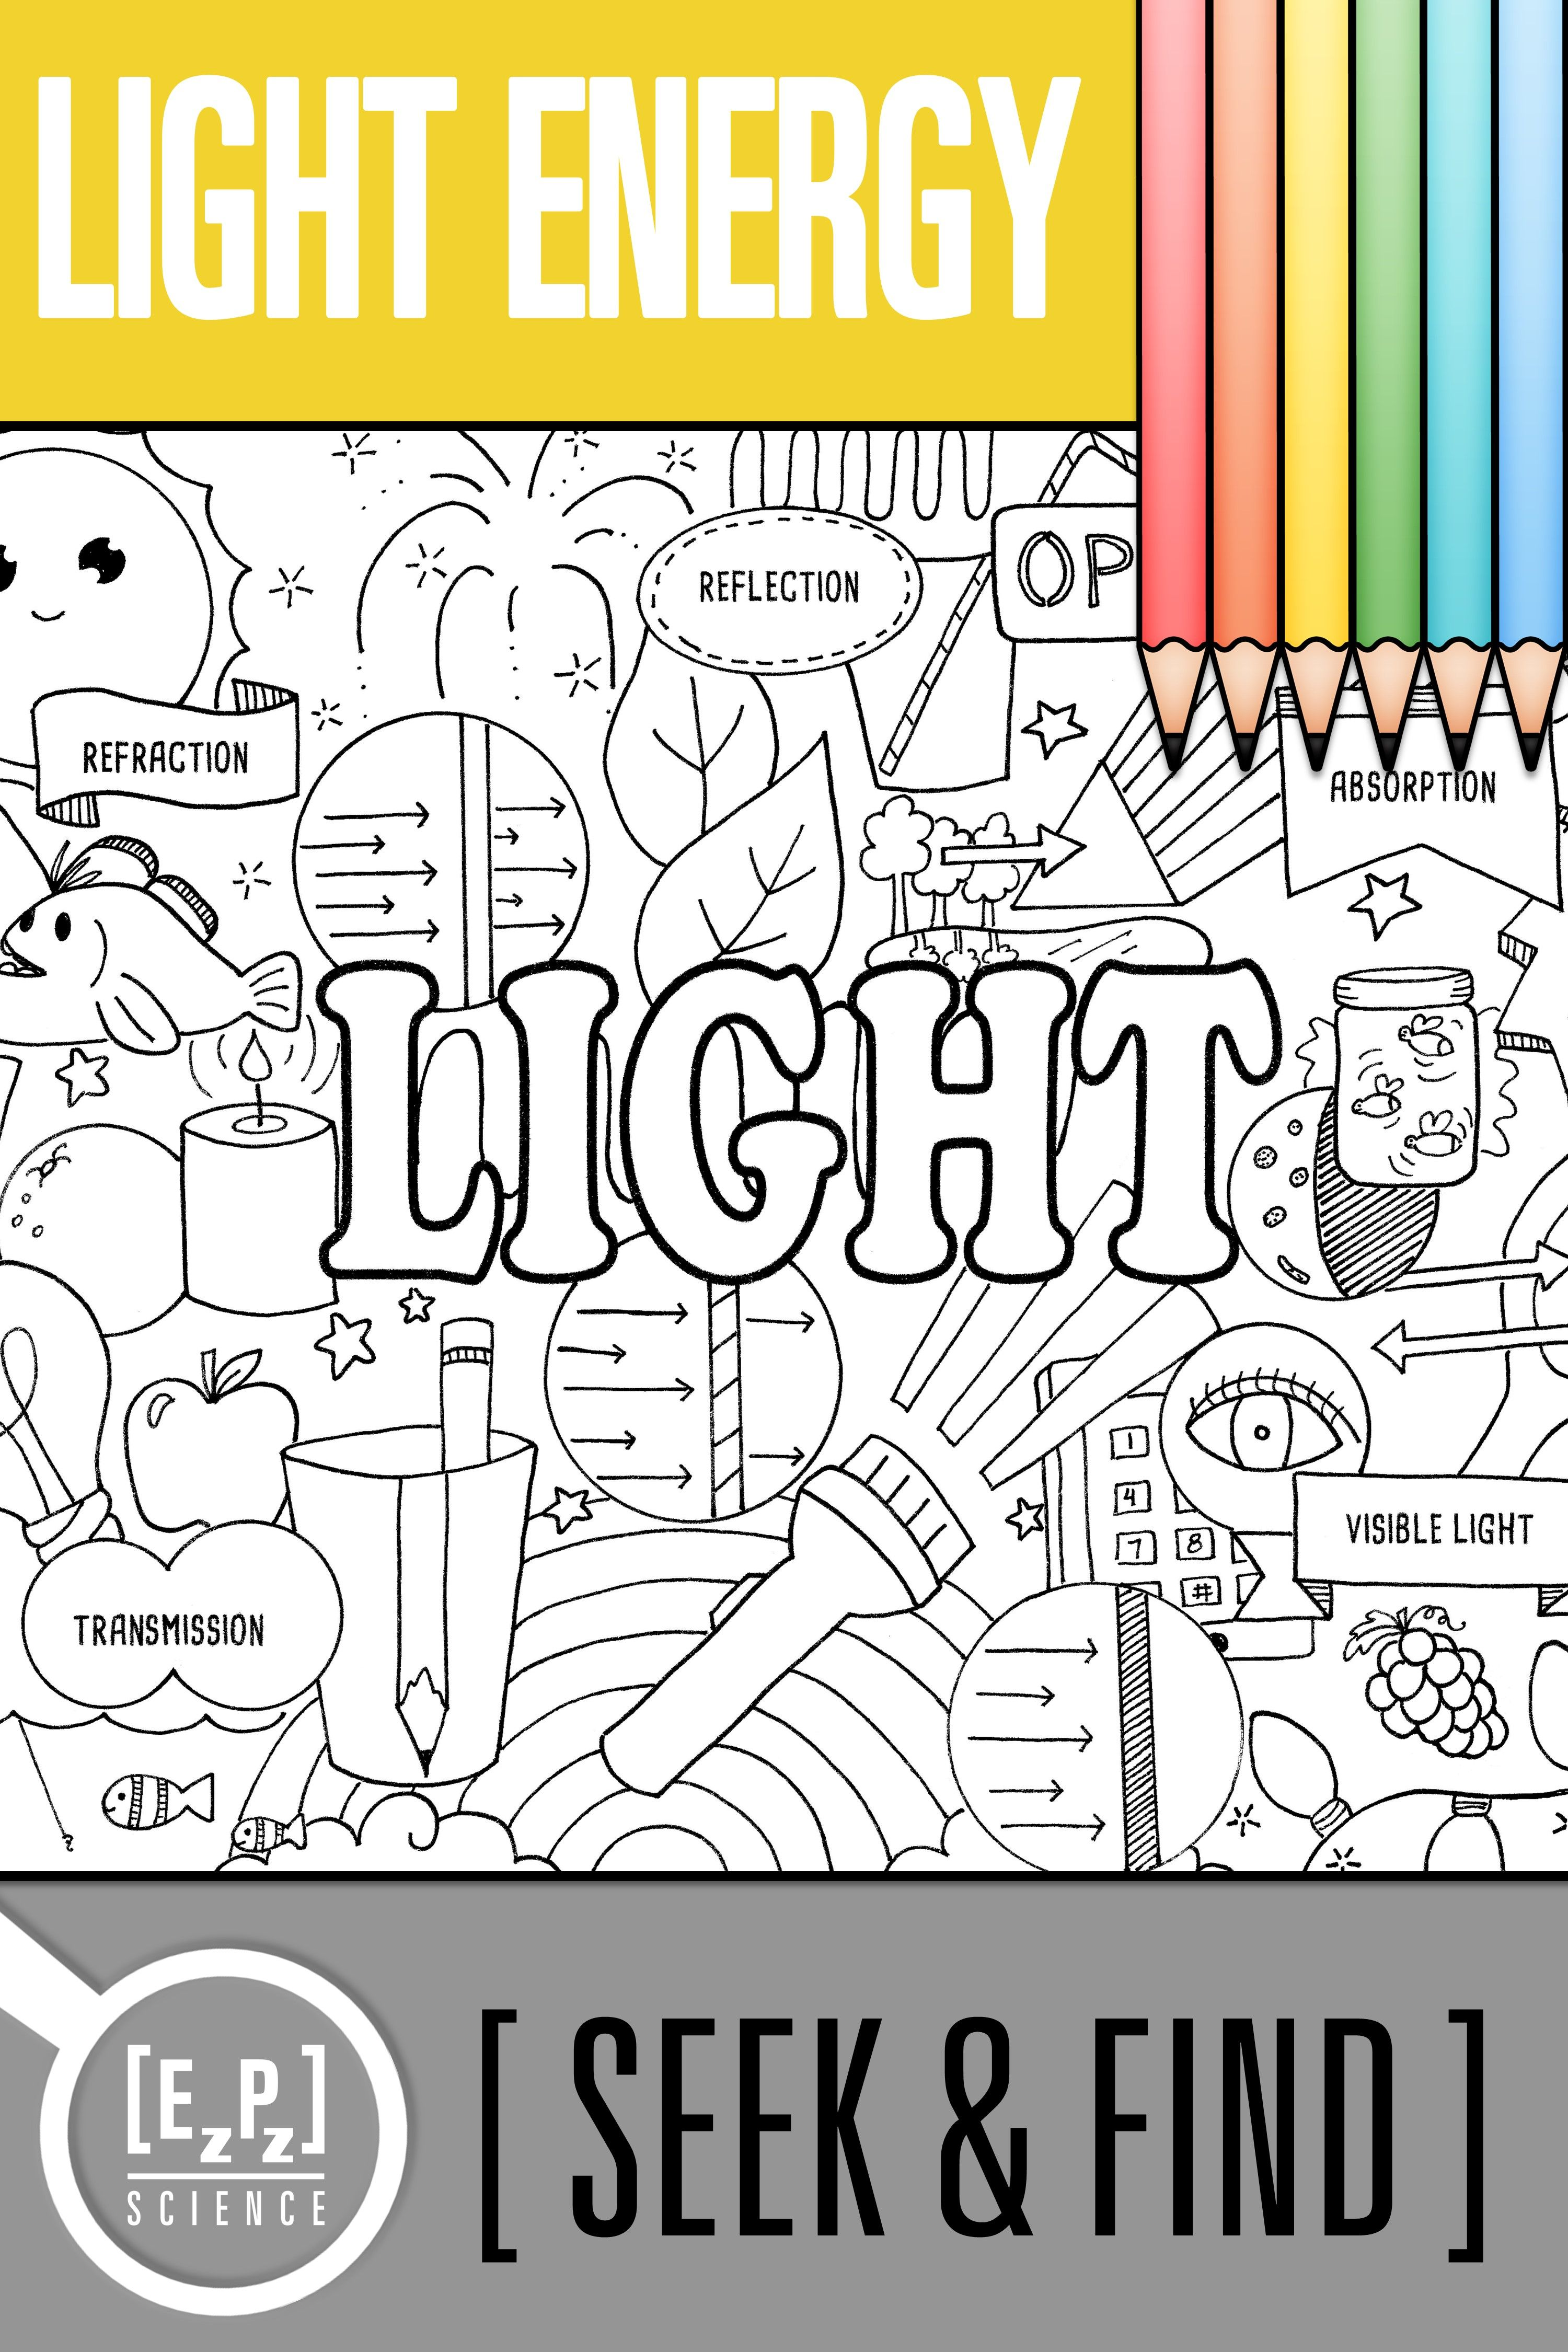 Light Energy Seek And Find Science Doodle Activity No Prep Print And Digital Science Doodles Light Energy Chemistry Classroom